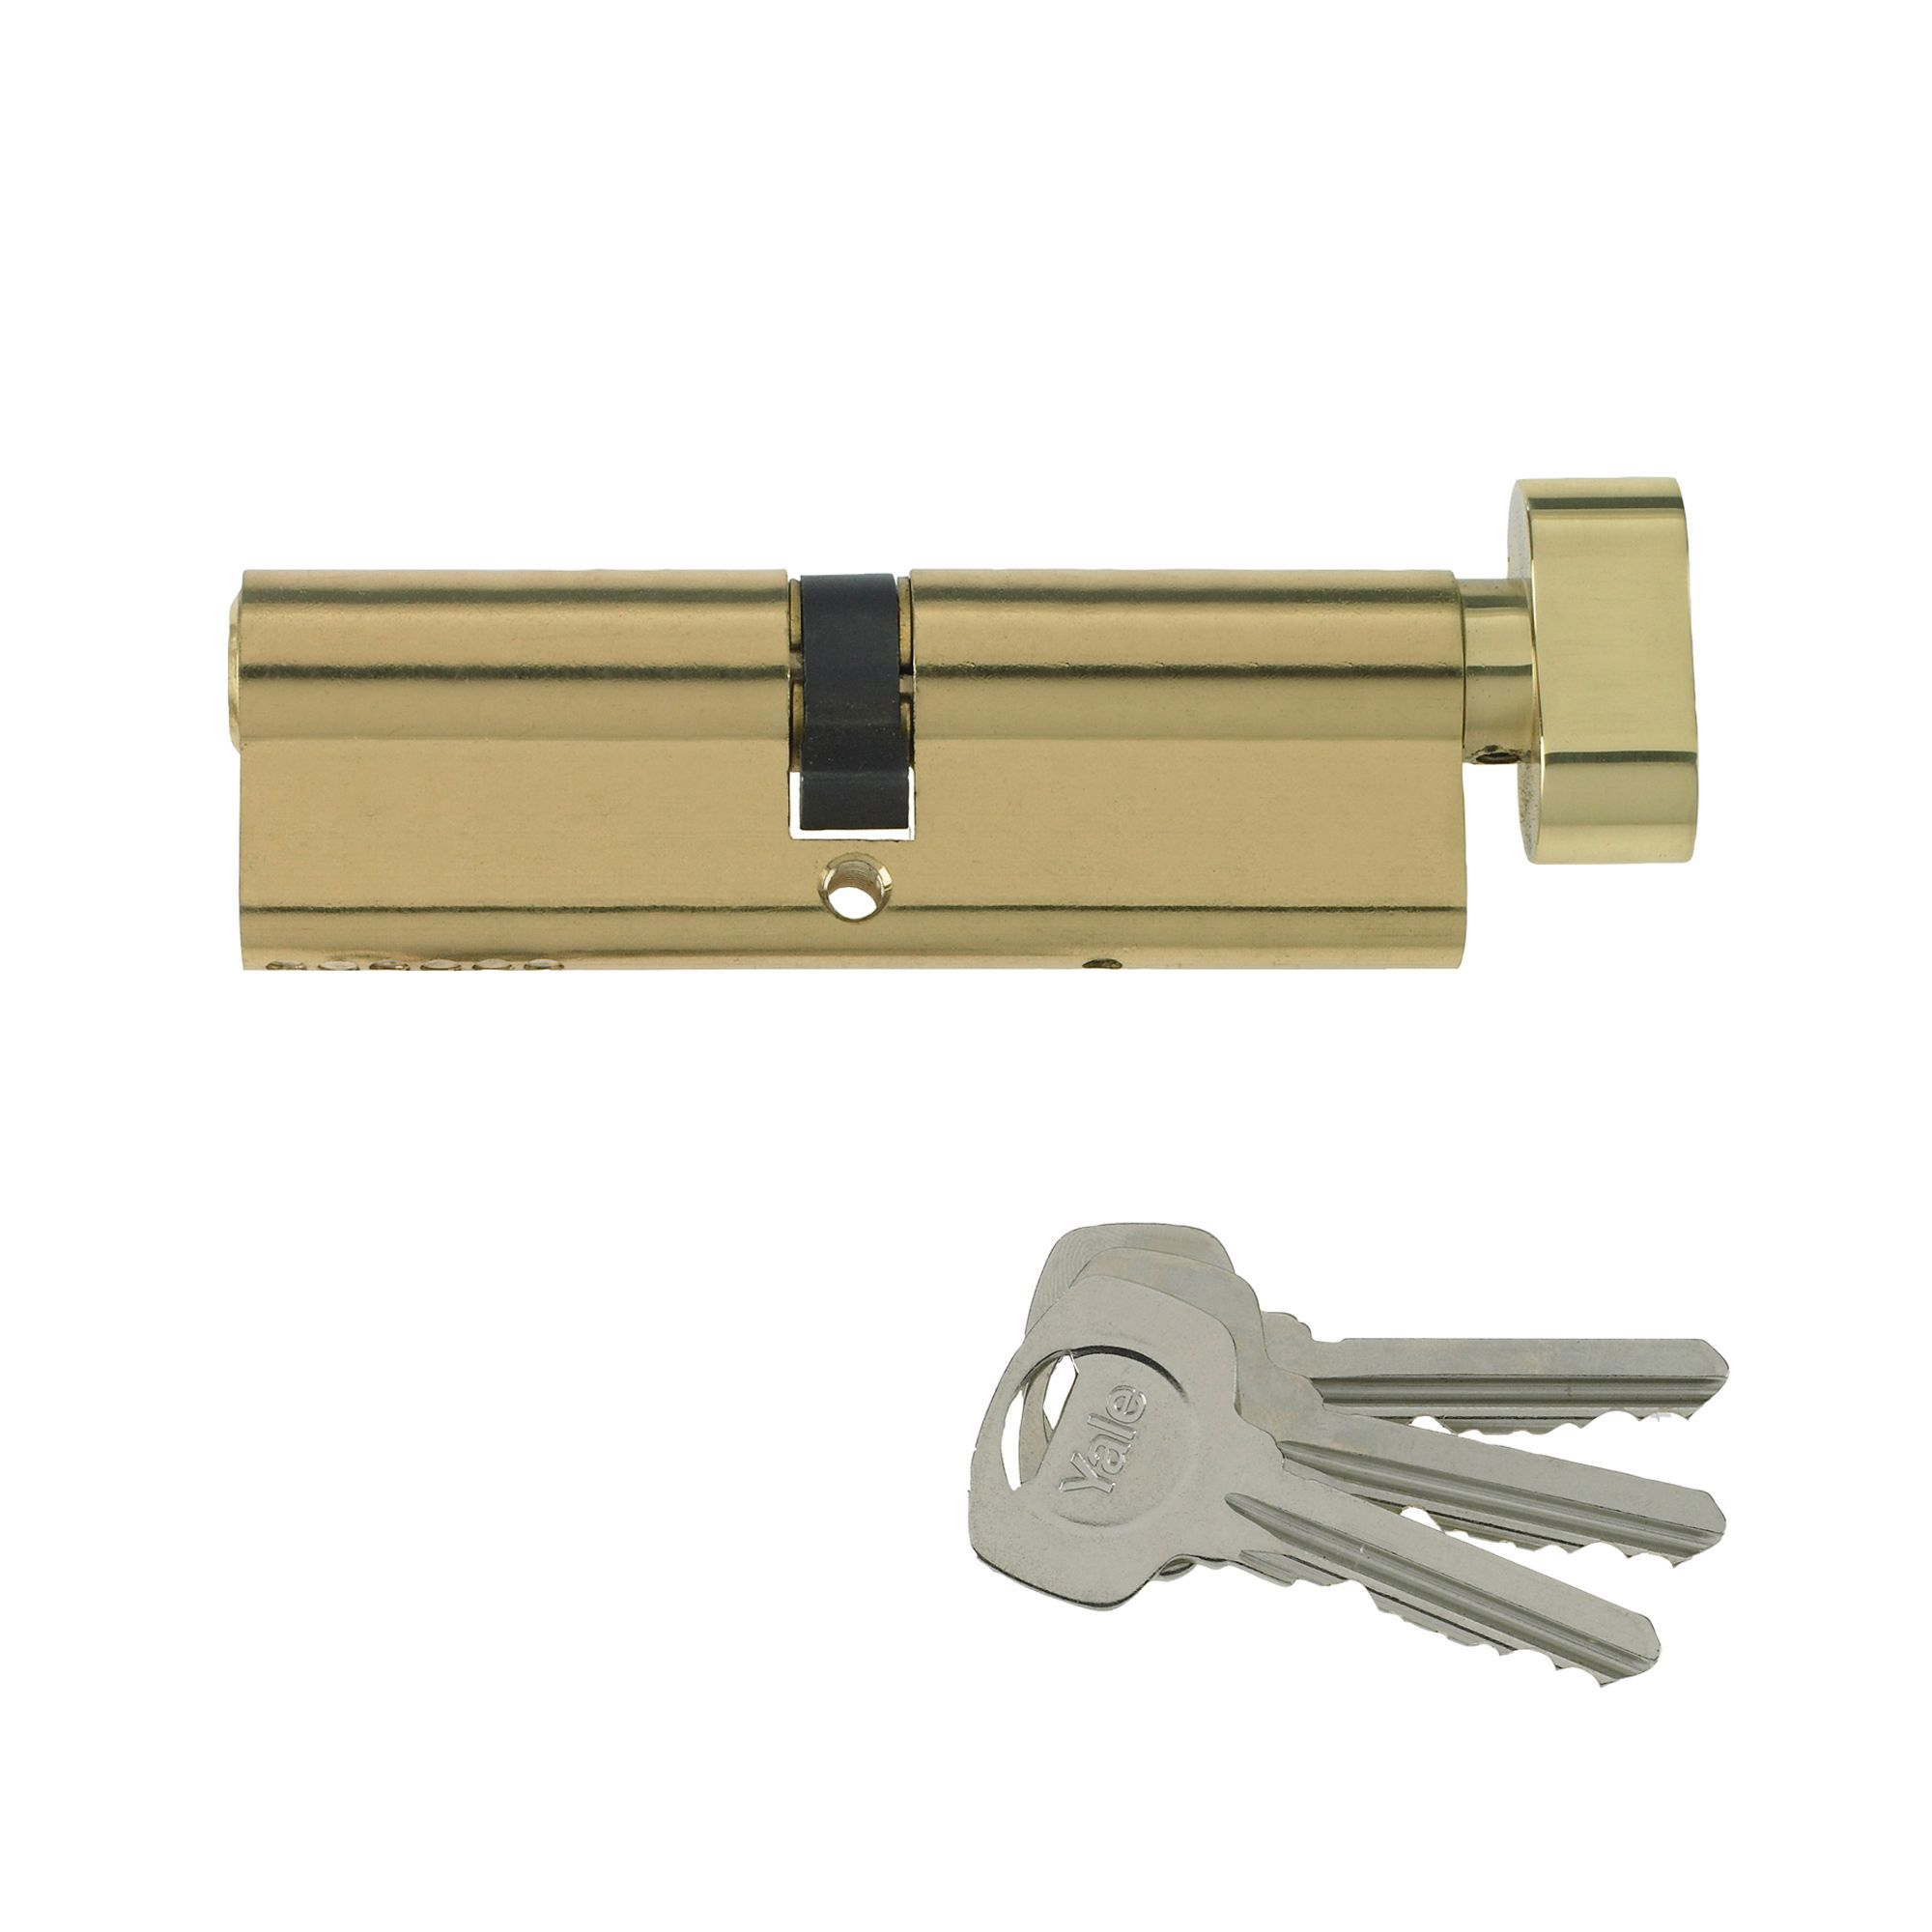 Yale 70mm Brass-plated Thumbturn Euro Cylinder Lock